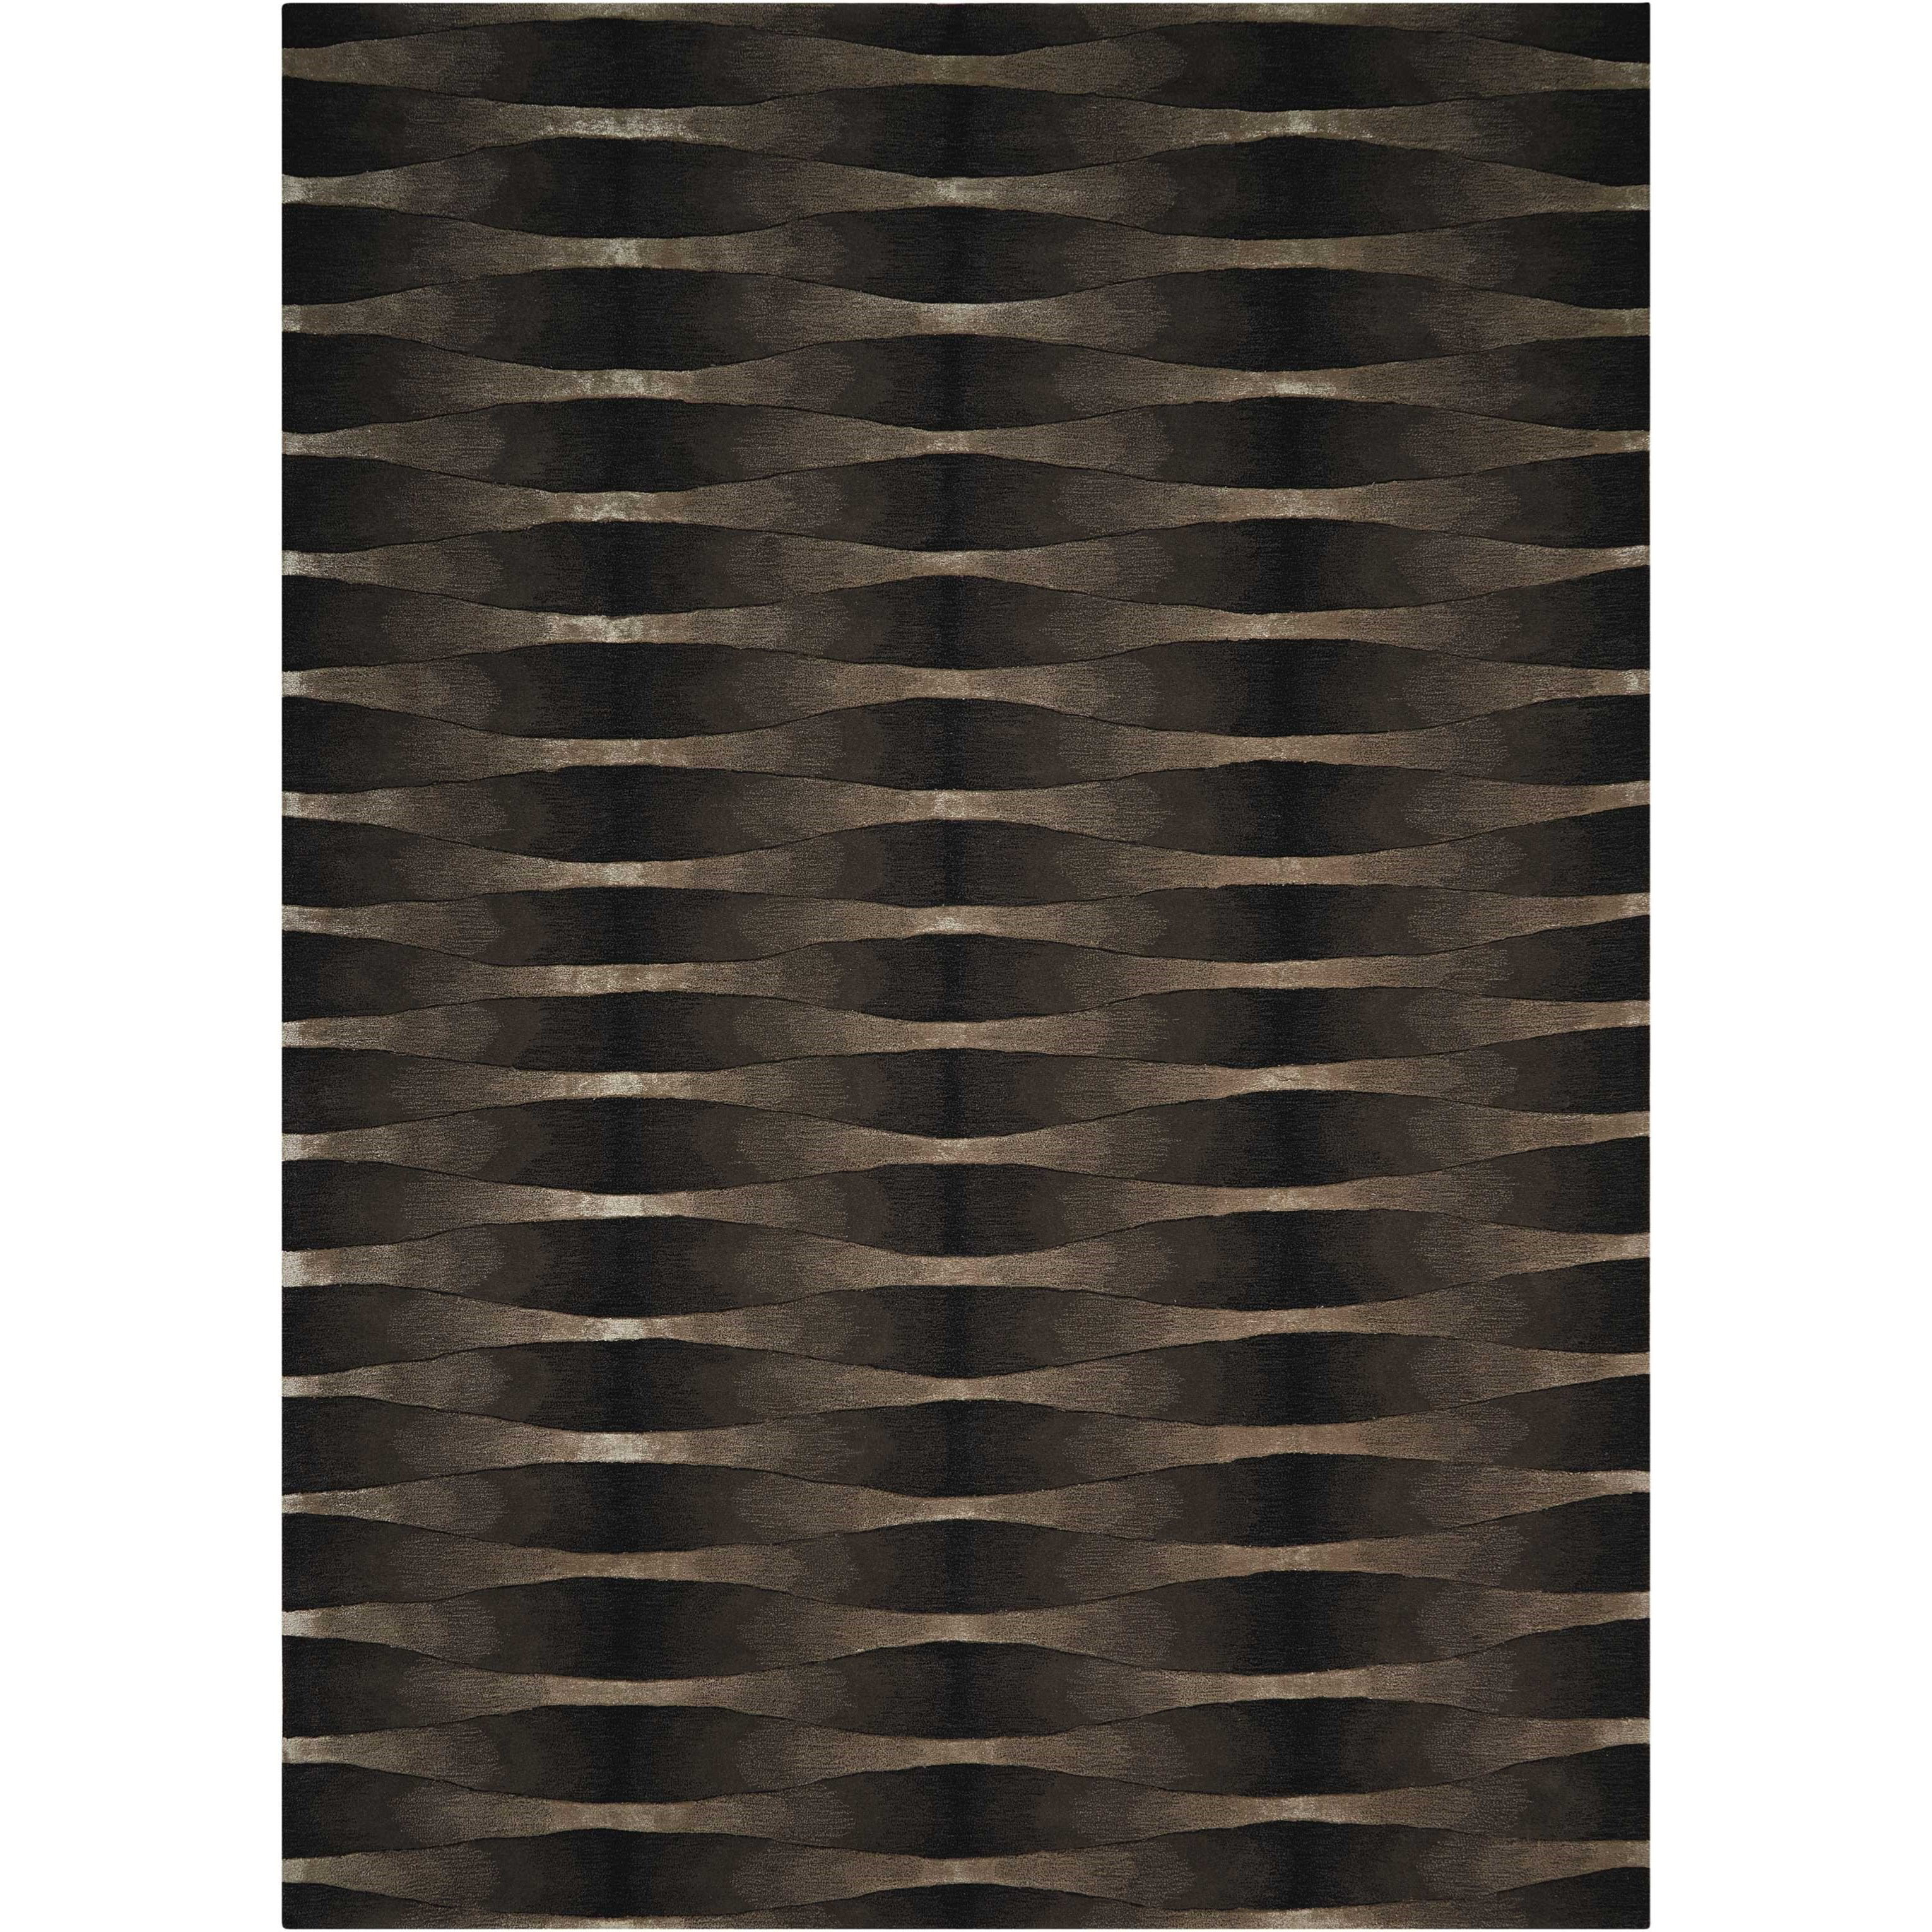 """Moda 7'6"""" x 9'6"""" Onyx Rectangle Rug by Nourison at Home Collections Furniture"""